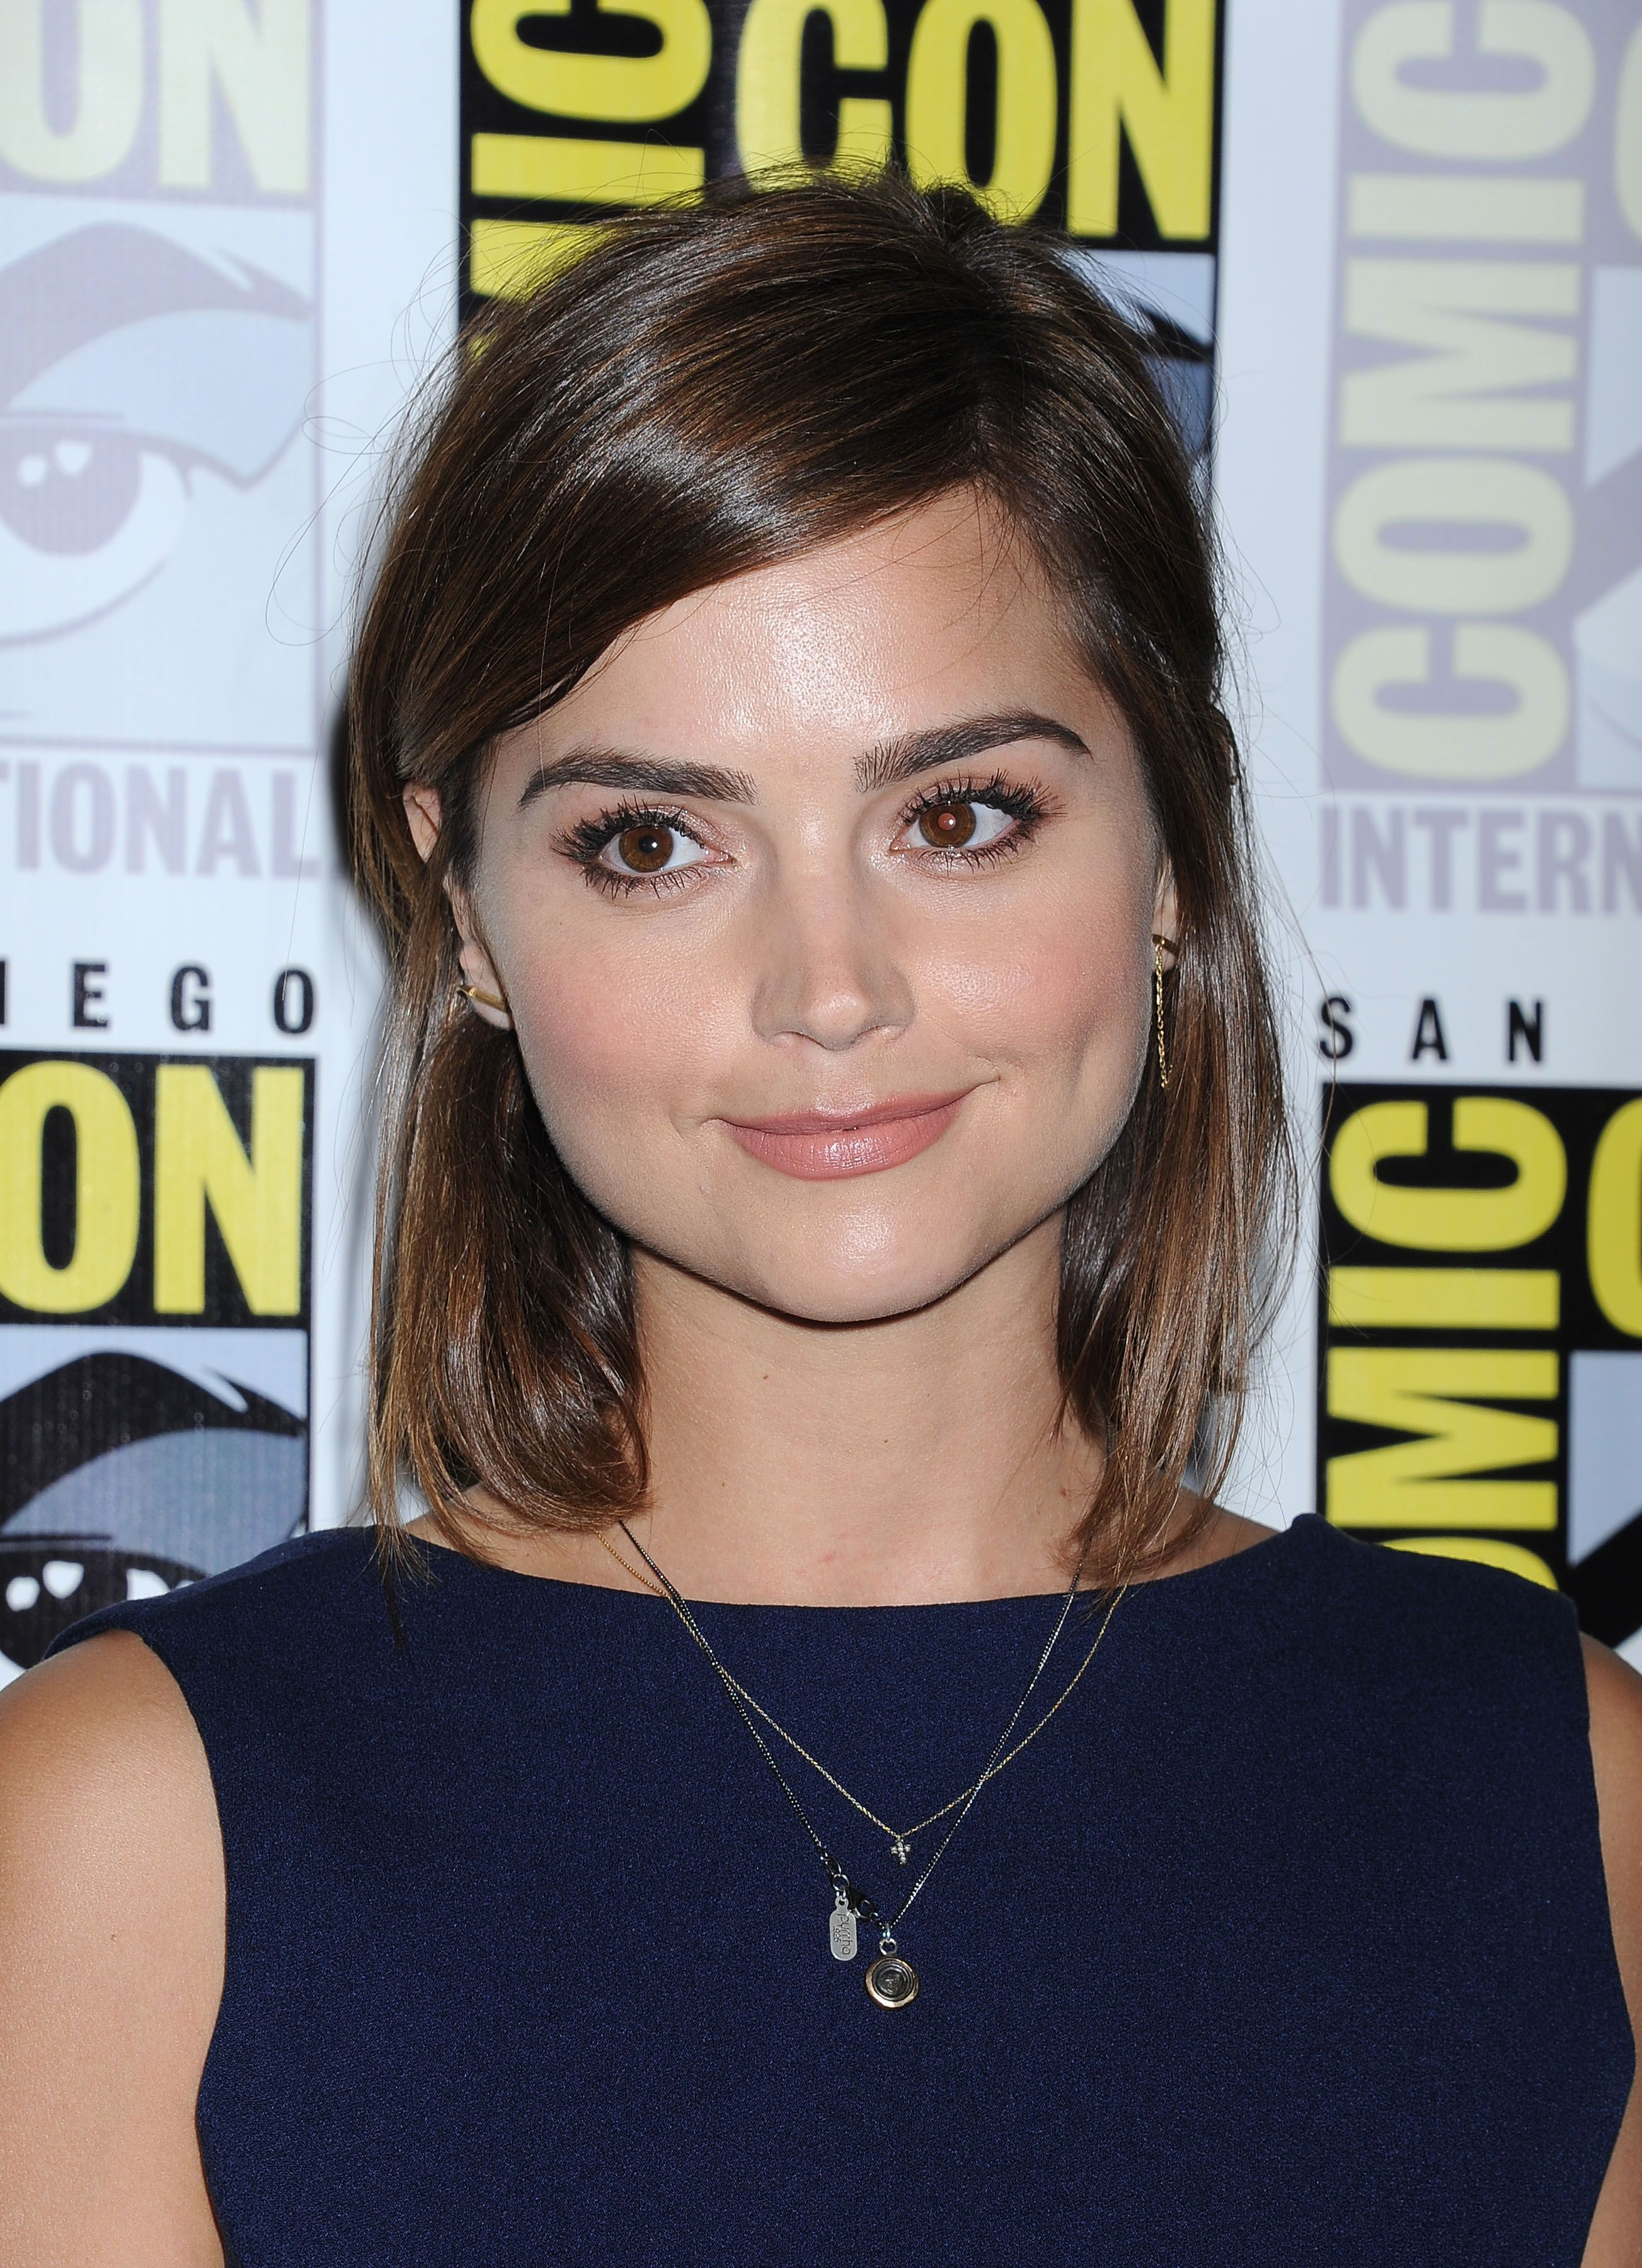 Jenna Coleman Attends The Bbc America Doctor Who Photo Call During